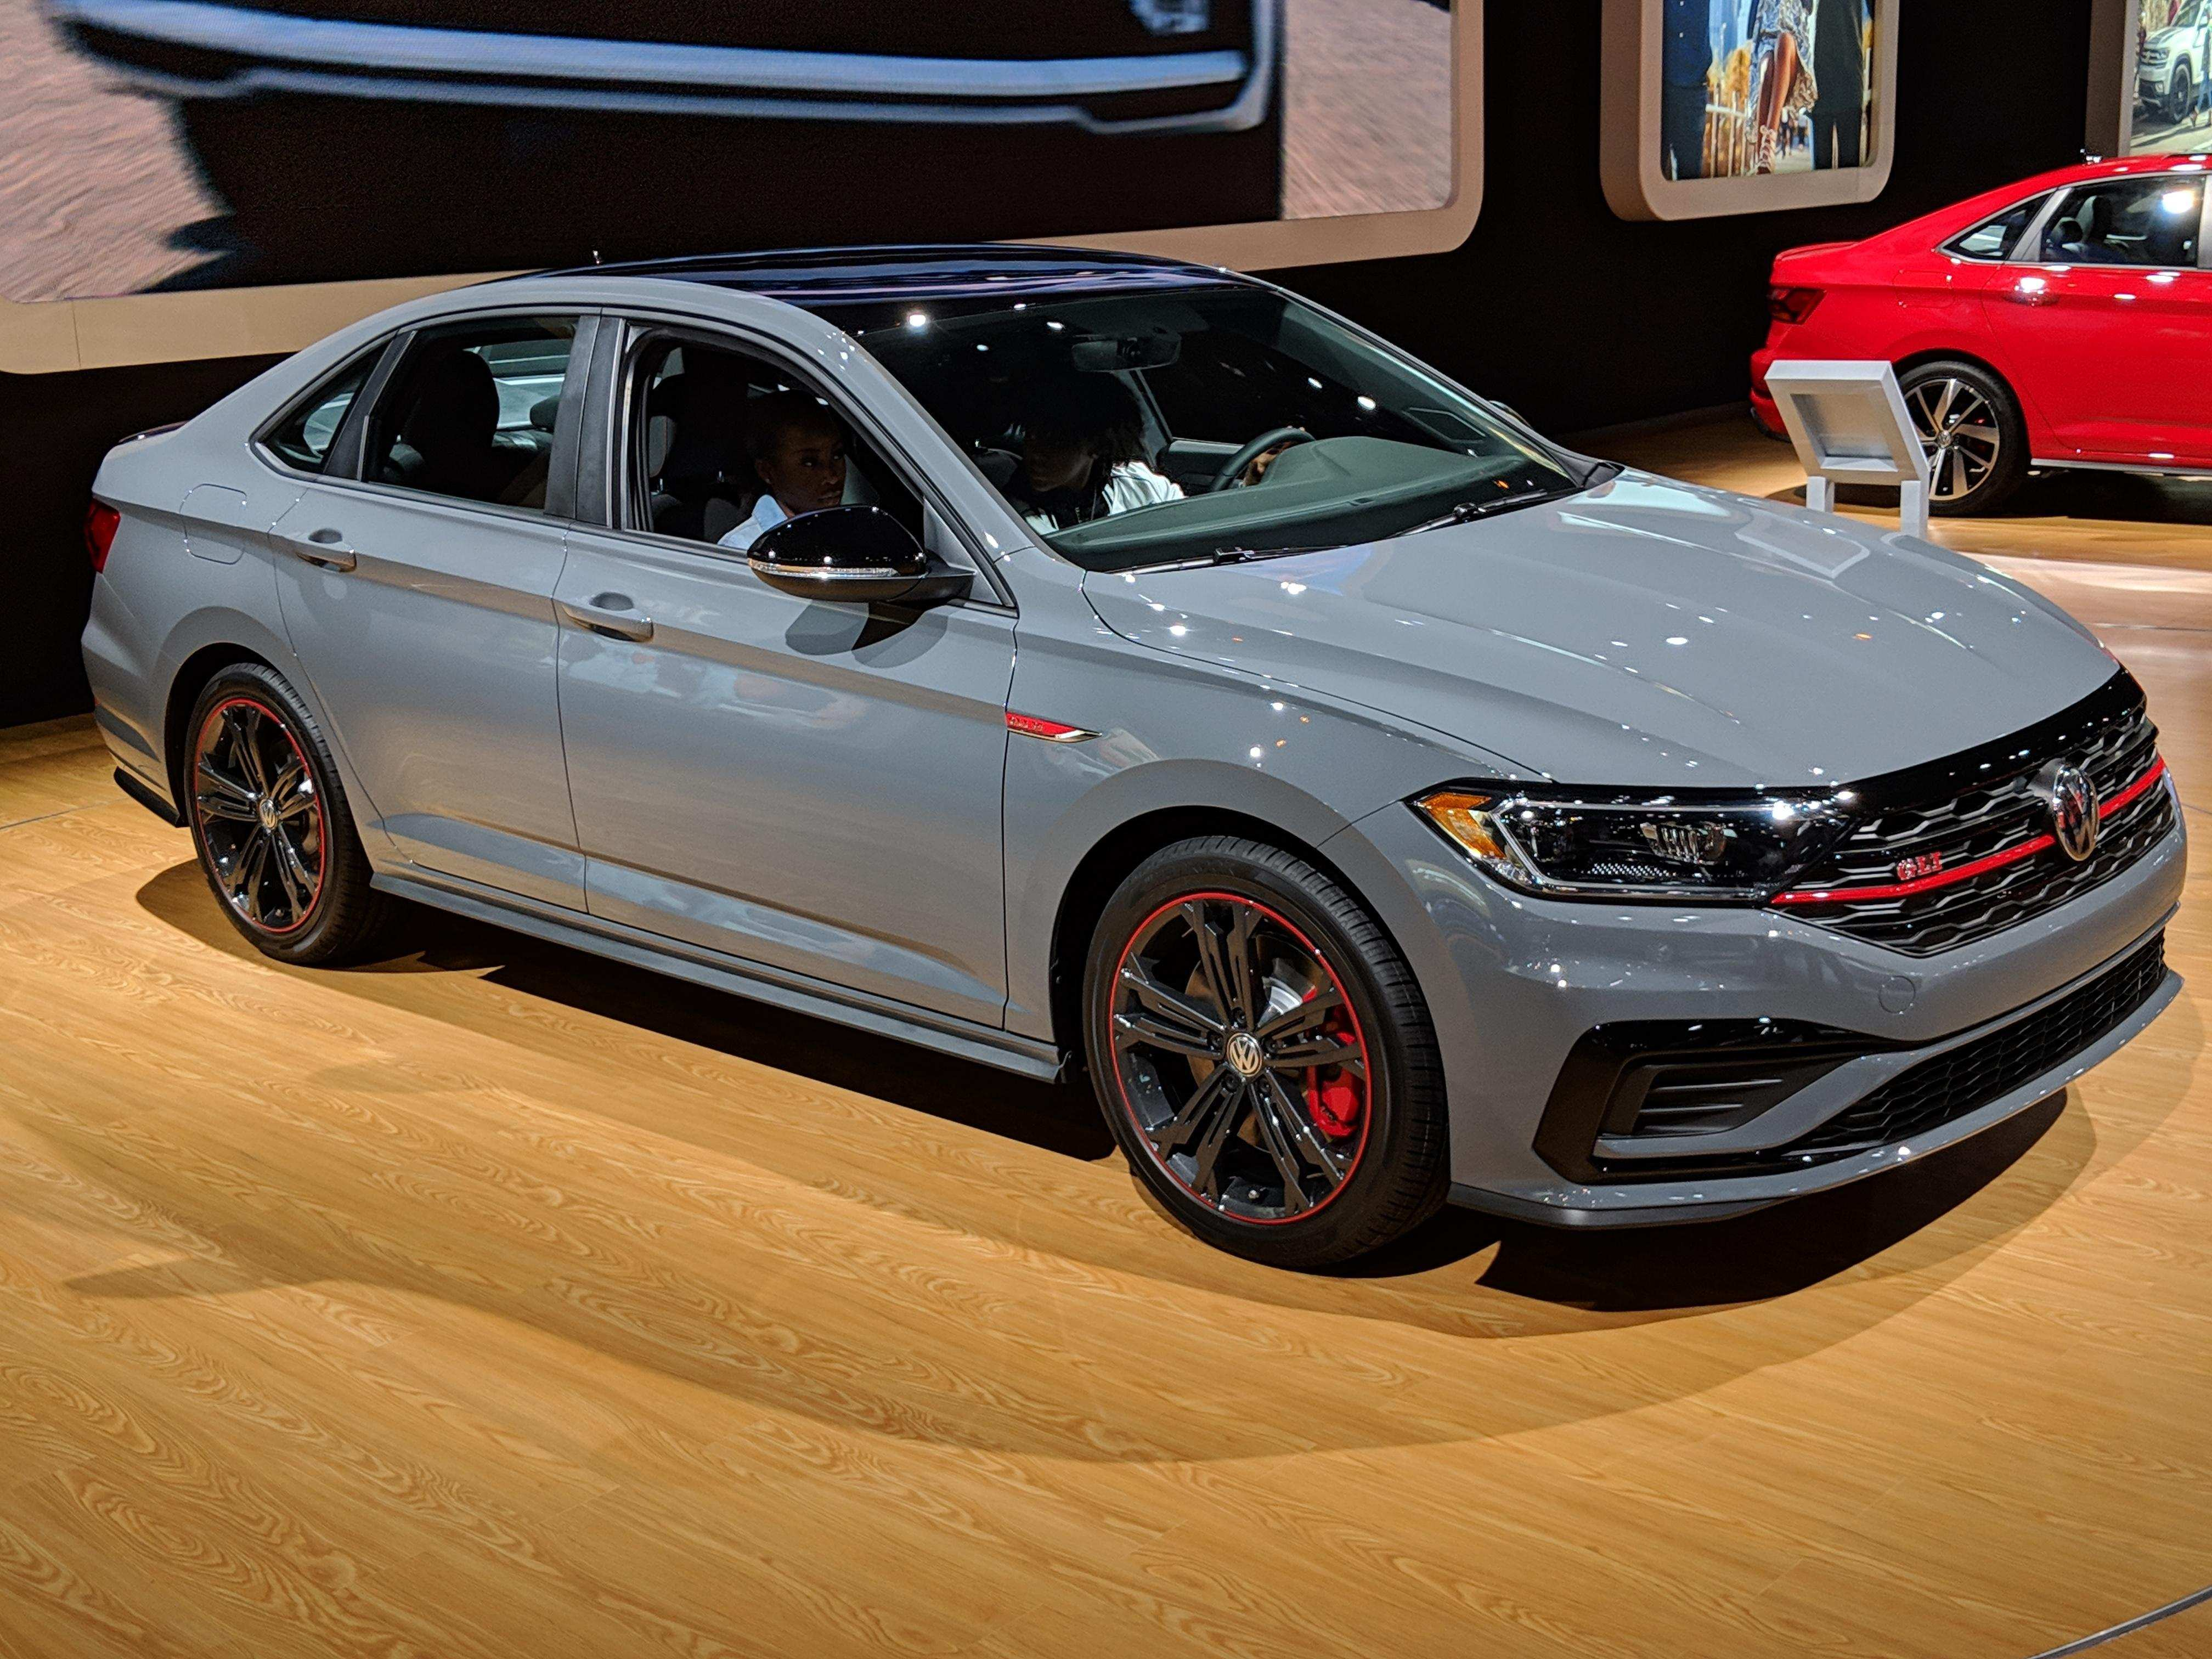 53 The 2020 Vw Jetta Rumors